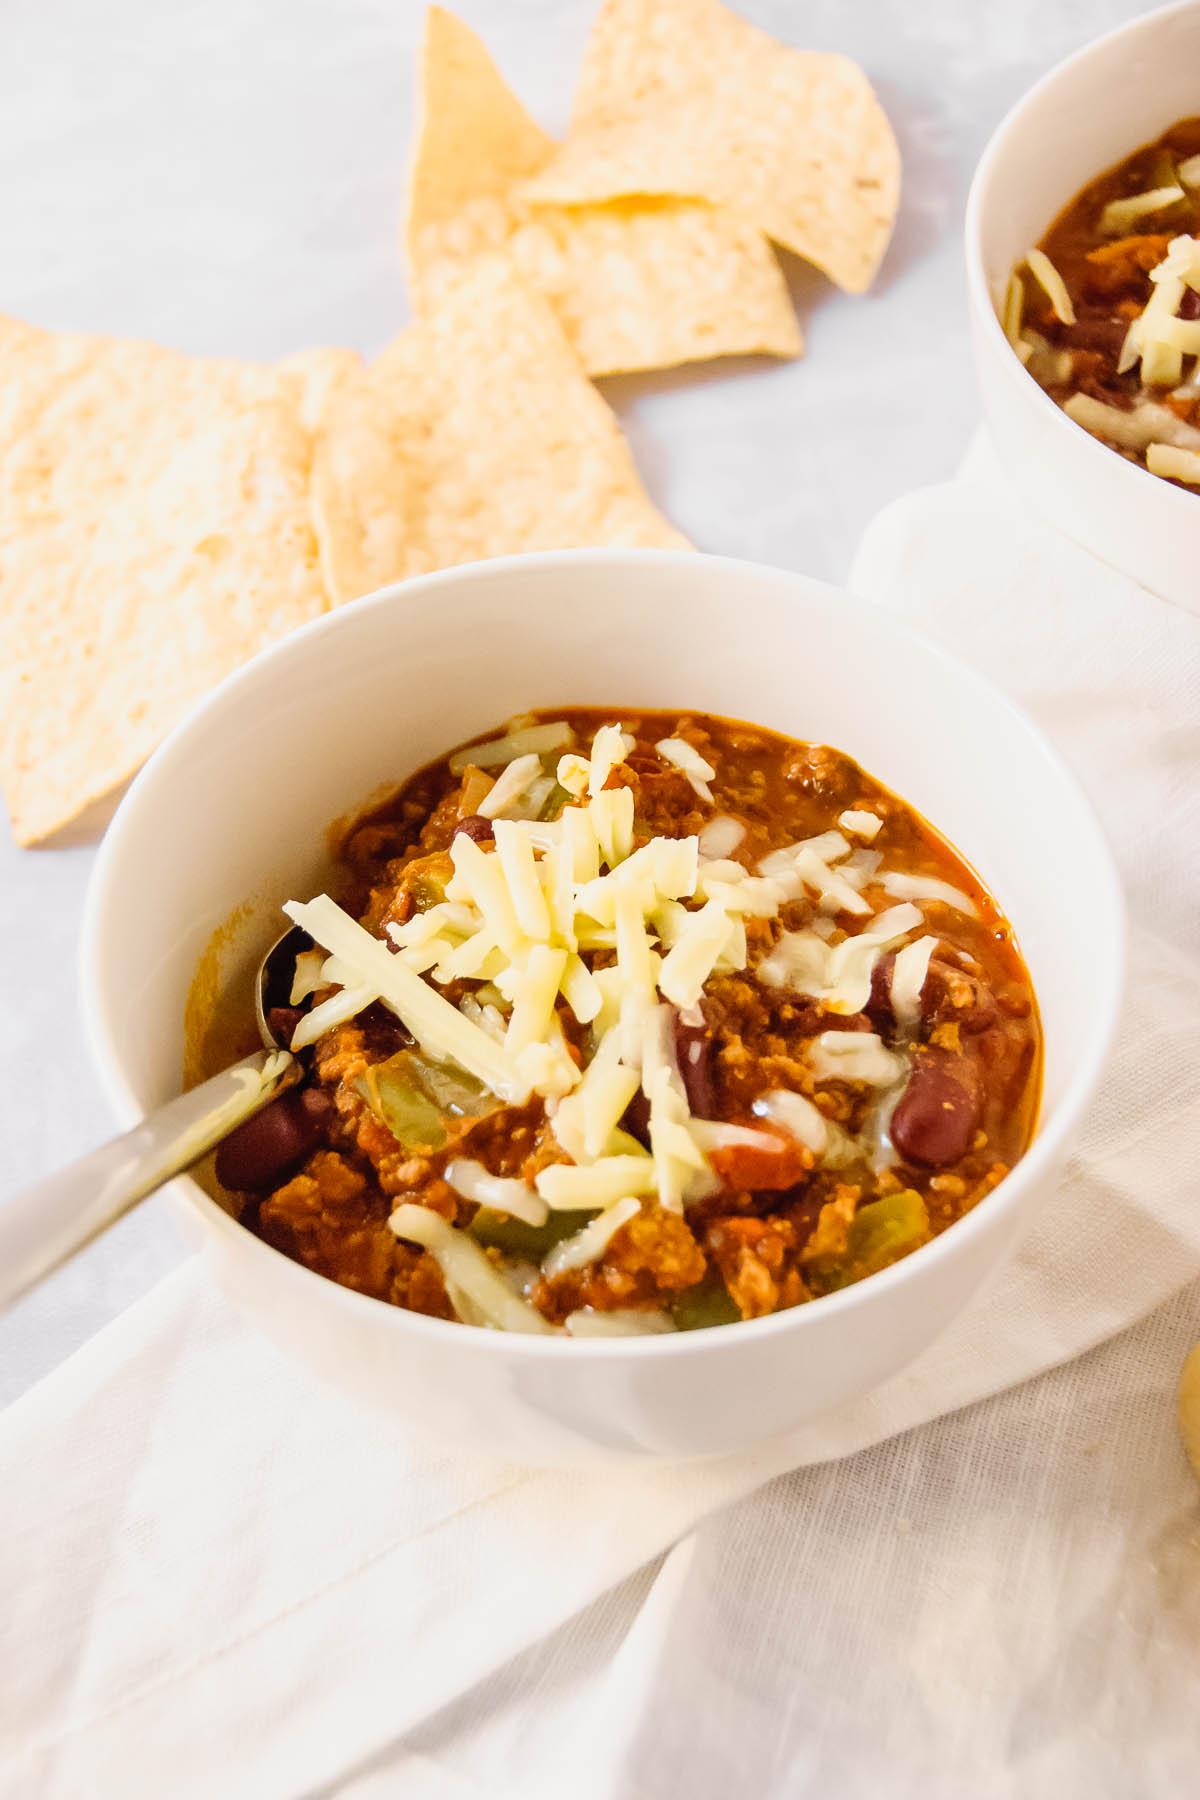 Yummy simple 8-ingredient beef chili made with all the good stuff! Onions, peppers, beef and tomatoes come together with chili powder, oregano and some red chili flakes for some heat on your tongue and all over! - thebeaderchef.com #chili #beef #beefchili #glutenfree #onepot #coldweatherdinner #maindish #mainmeal #lunchbox